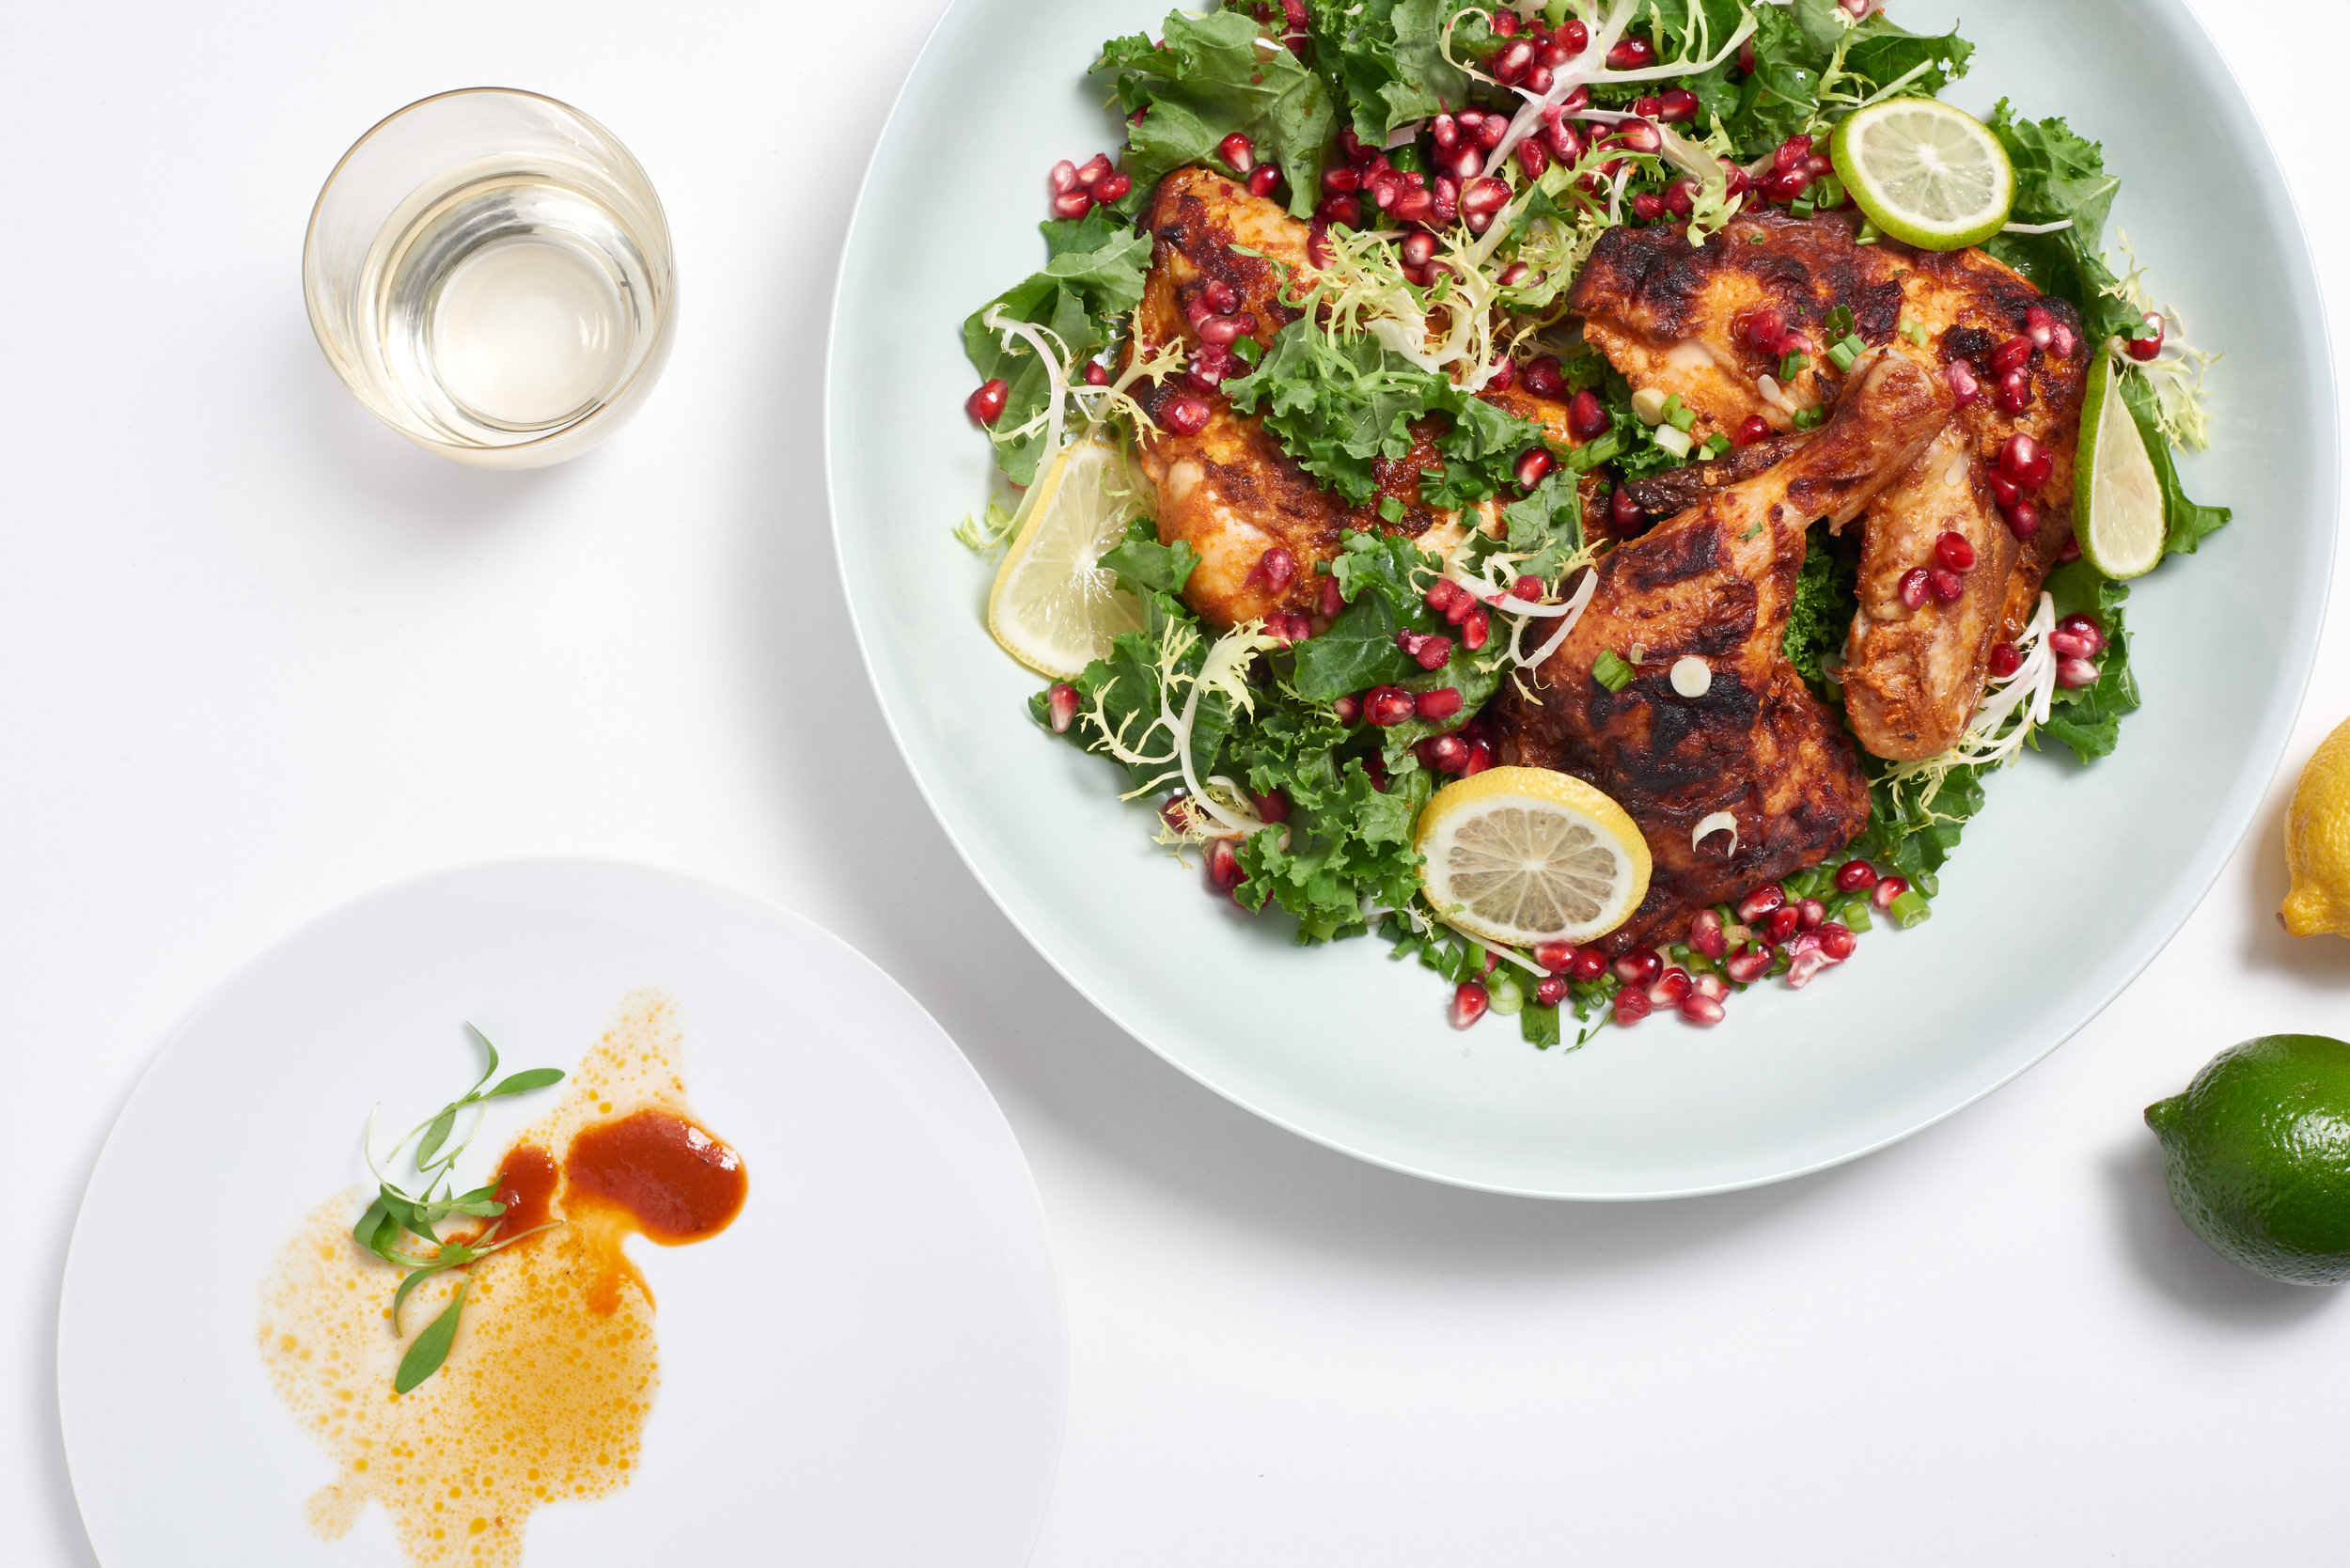 Red curry roasted chicken + citrus frisee endive & kale salad